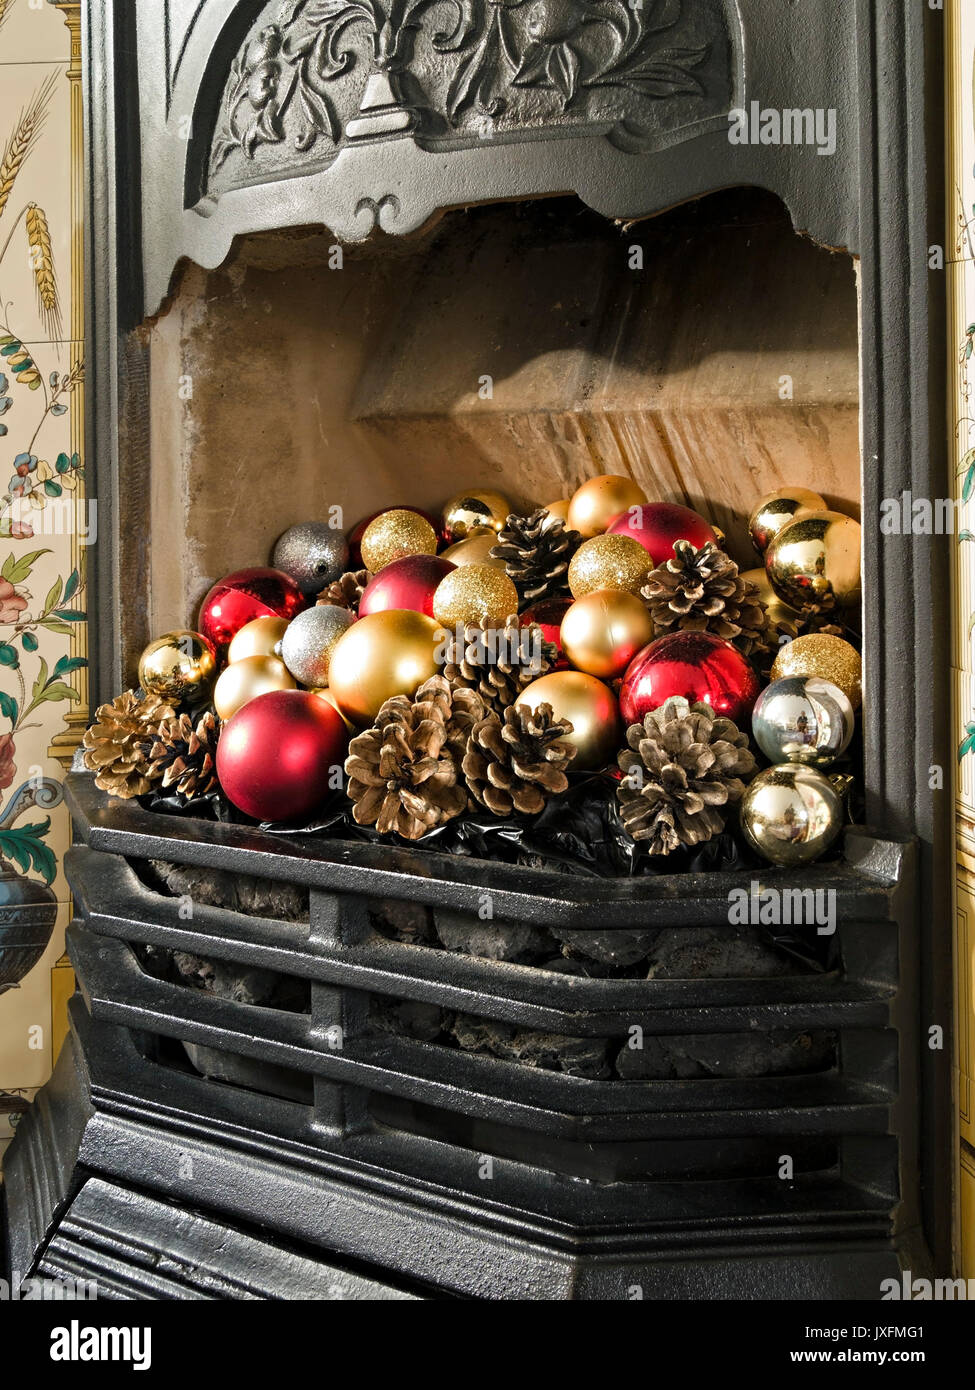 Pretty victorian style cast iron fireplace and grate decorated with colourful Christmas baubles and fir cones, England, UK - Stock Image